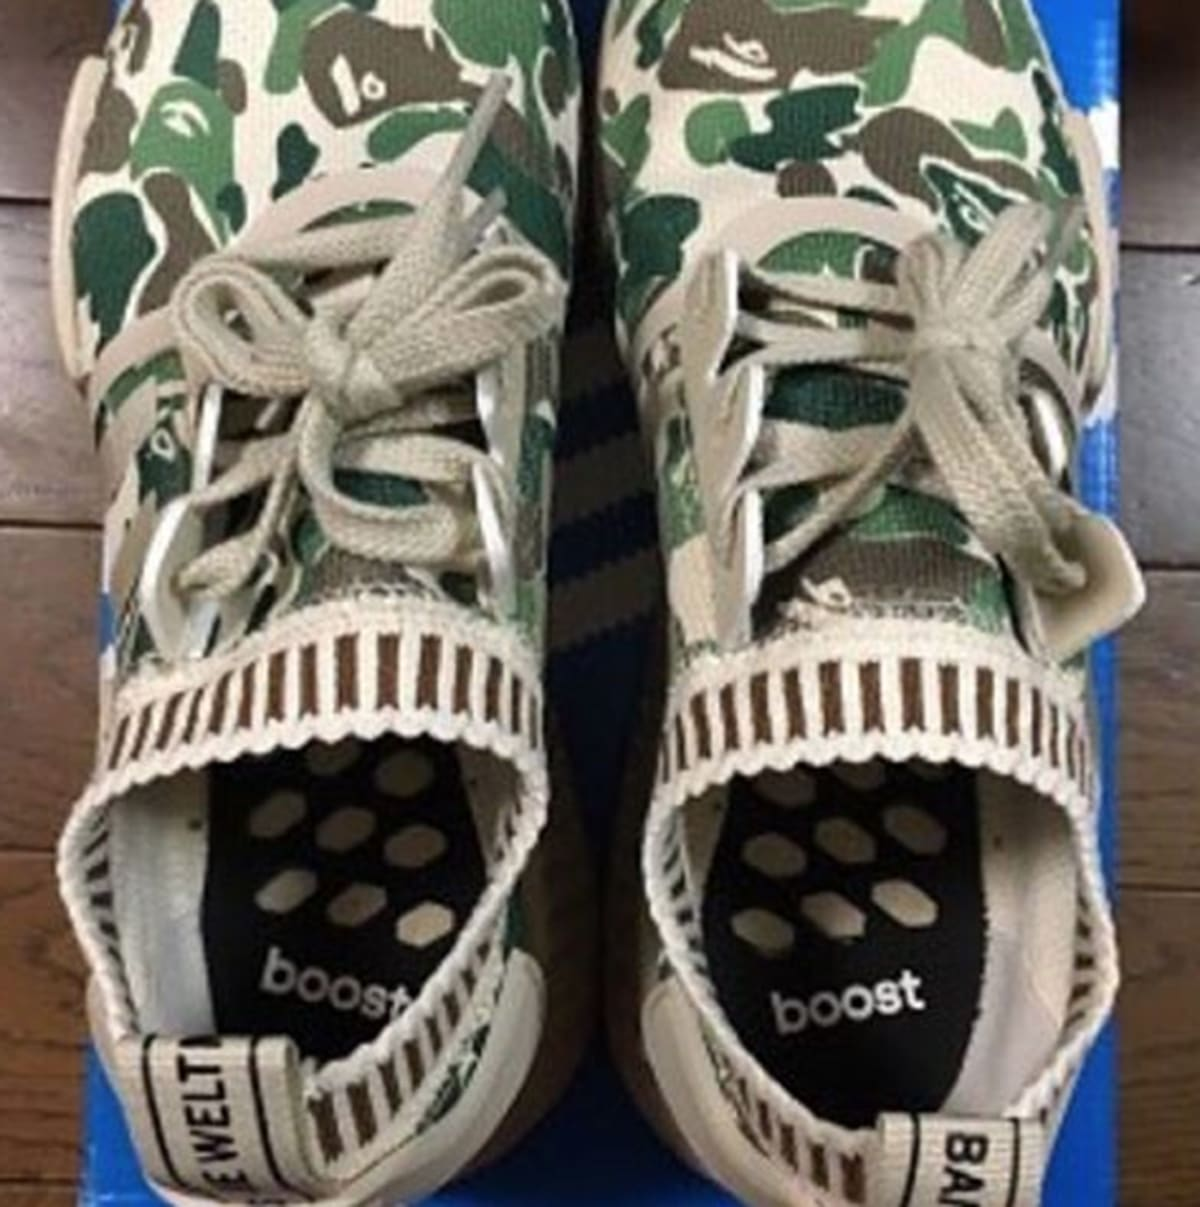 new adidas shoes blue high tops for kids adidas bape nmd black camo